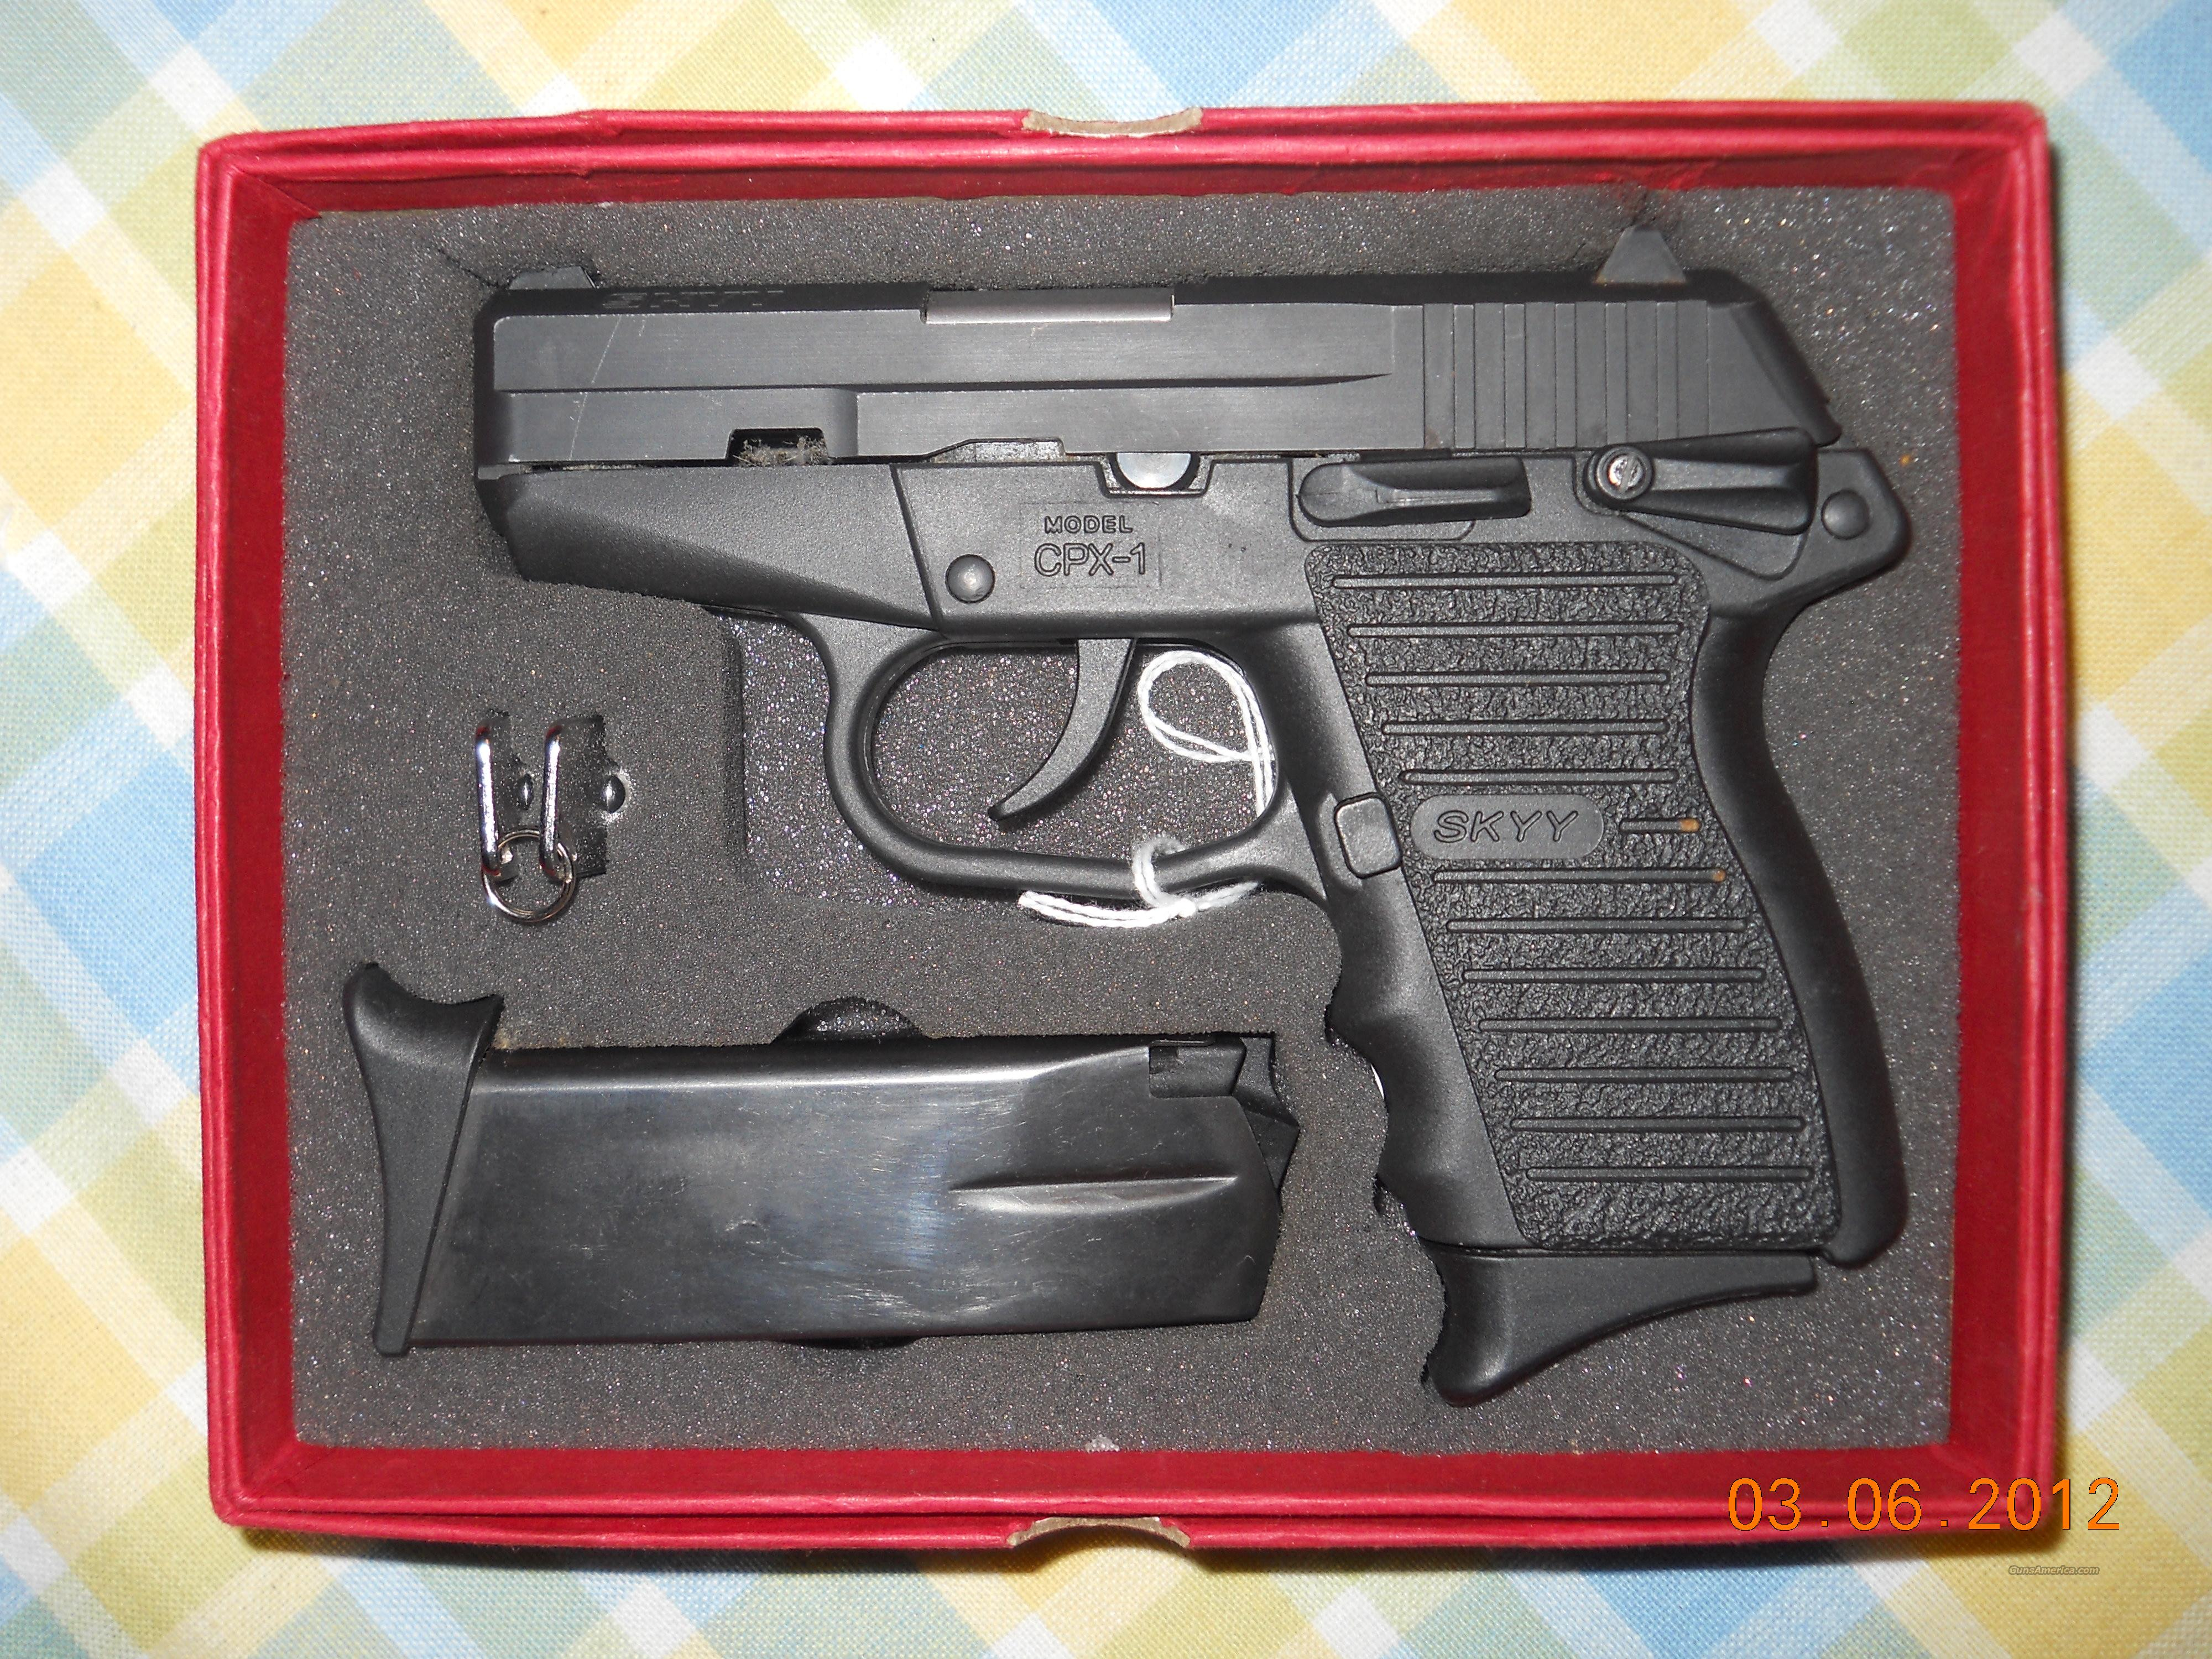 NEW!! SKYY INDUSTRIES CPX-1 .9MM CONSEAL CARRY PISTOL  Guns > Pistols > S Misc Pistols